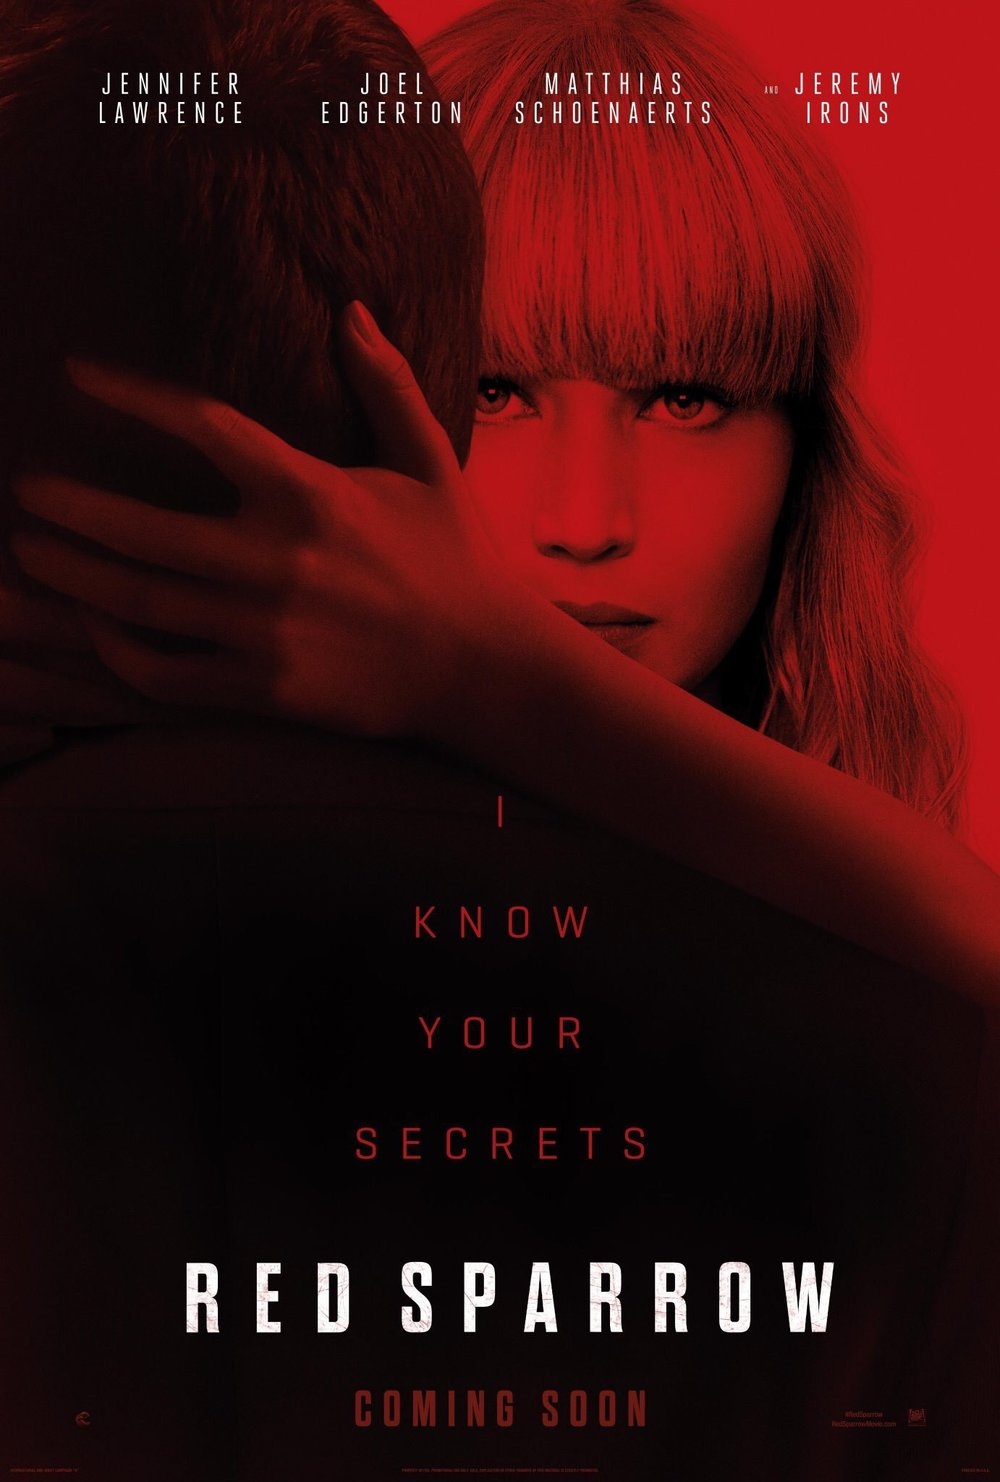 Red-Sparrow-new-film-poster.jpg